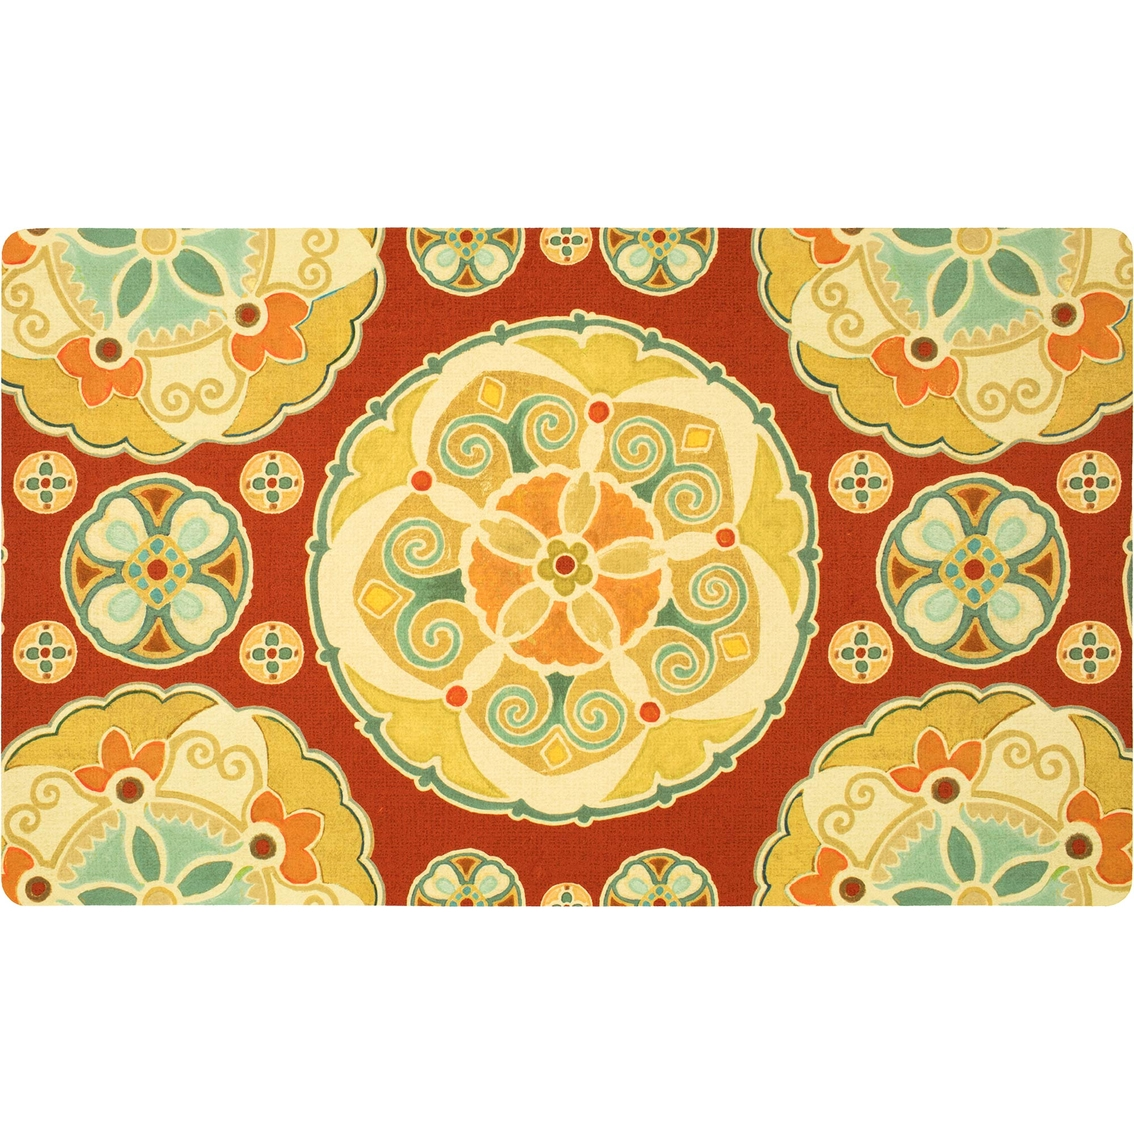 Mohawk Home Spice Route Suzani Kitchen Mat 18x30 Rugs